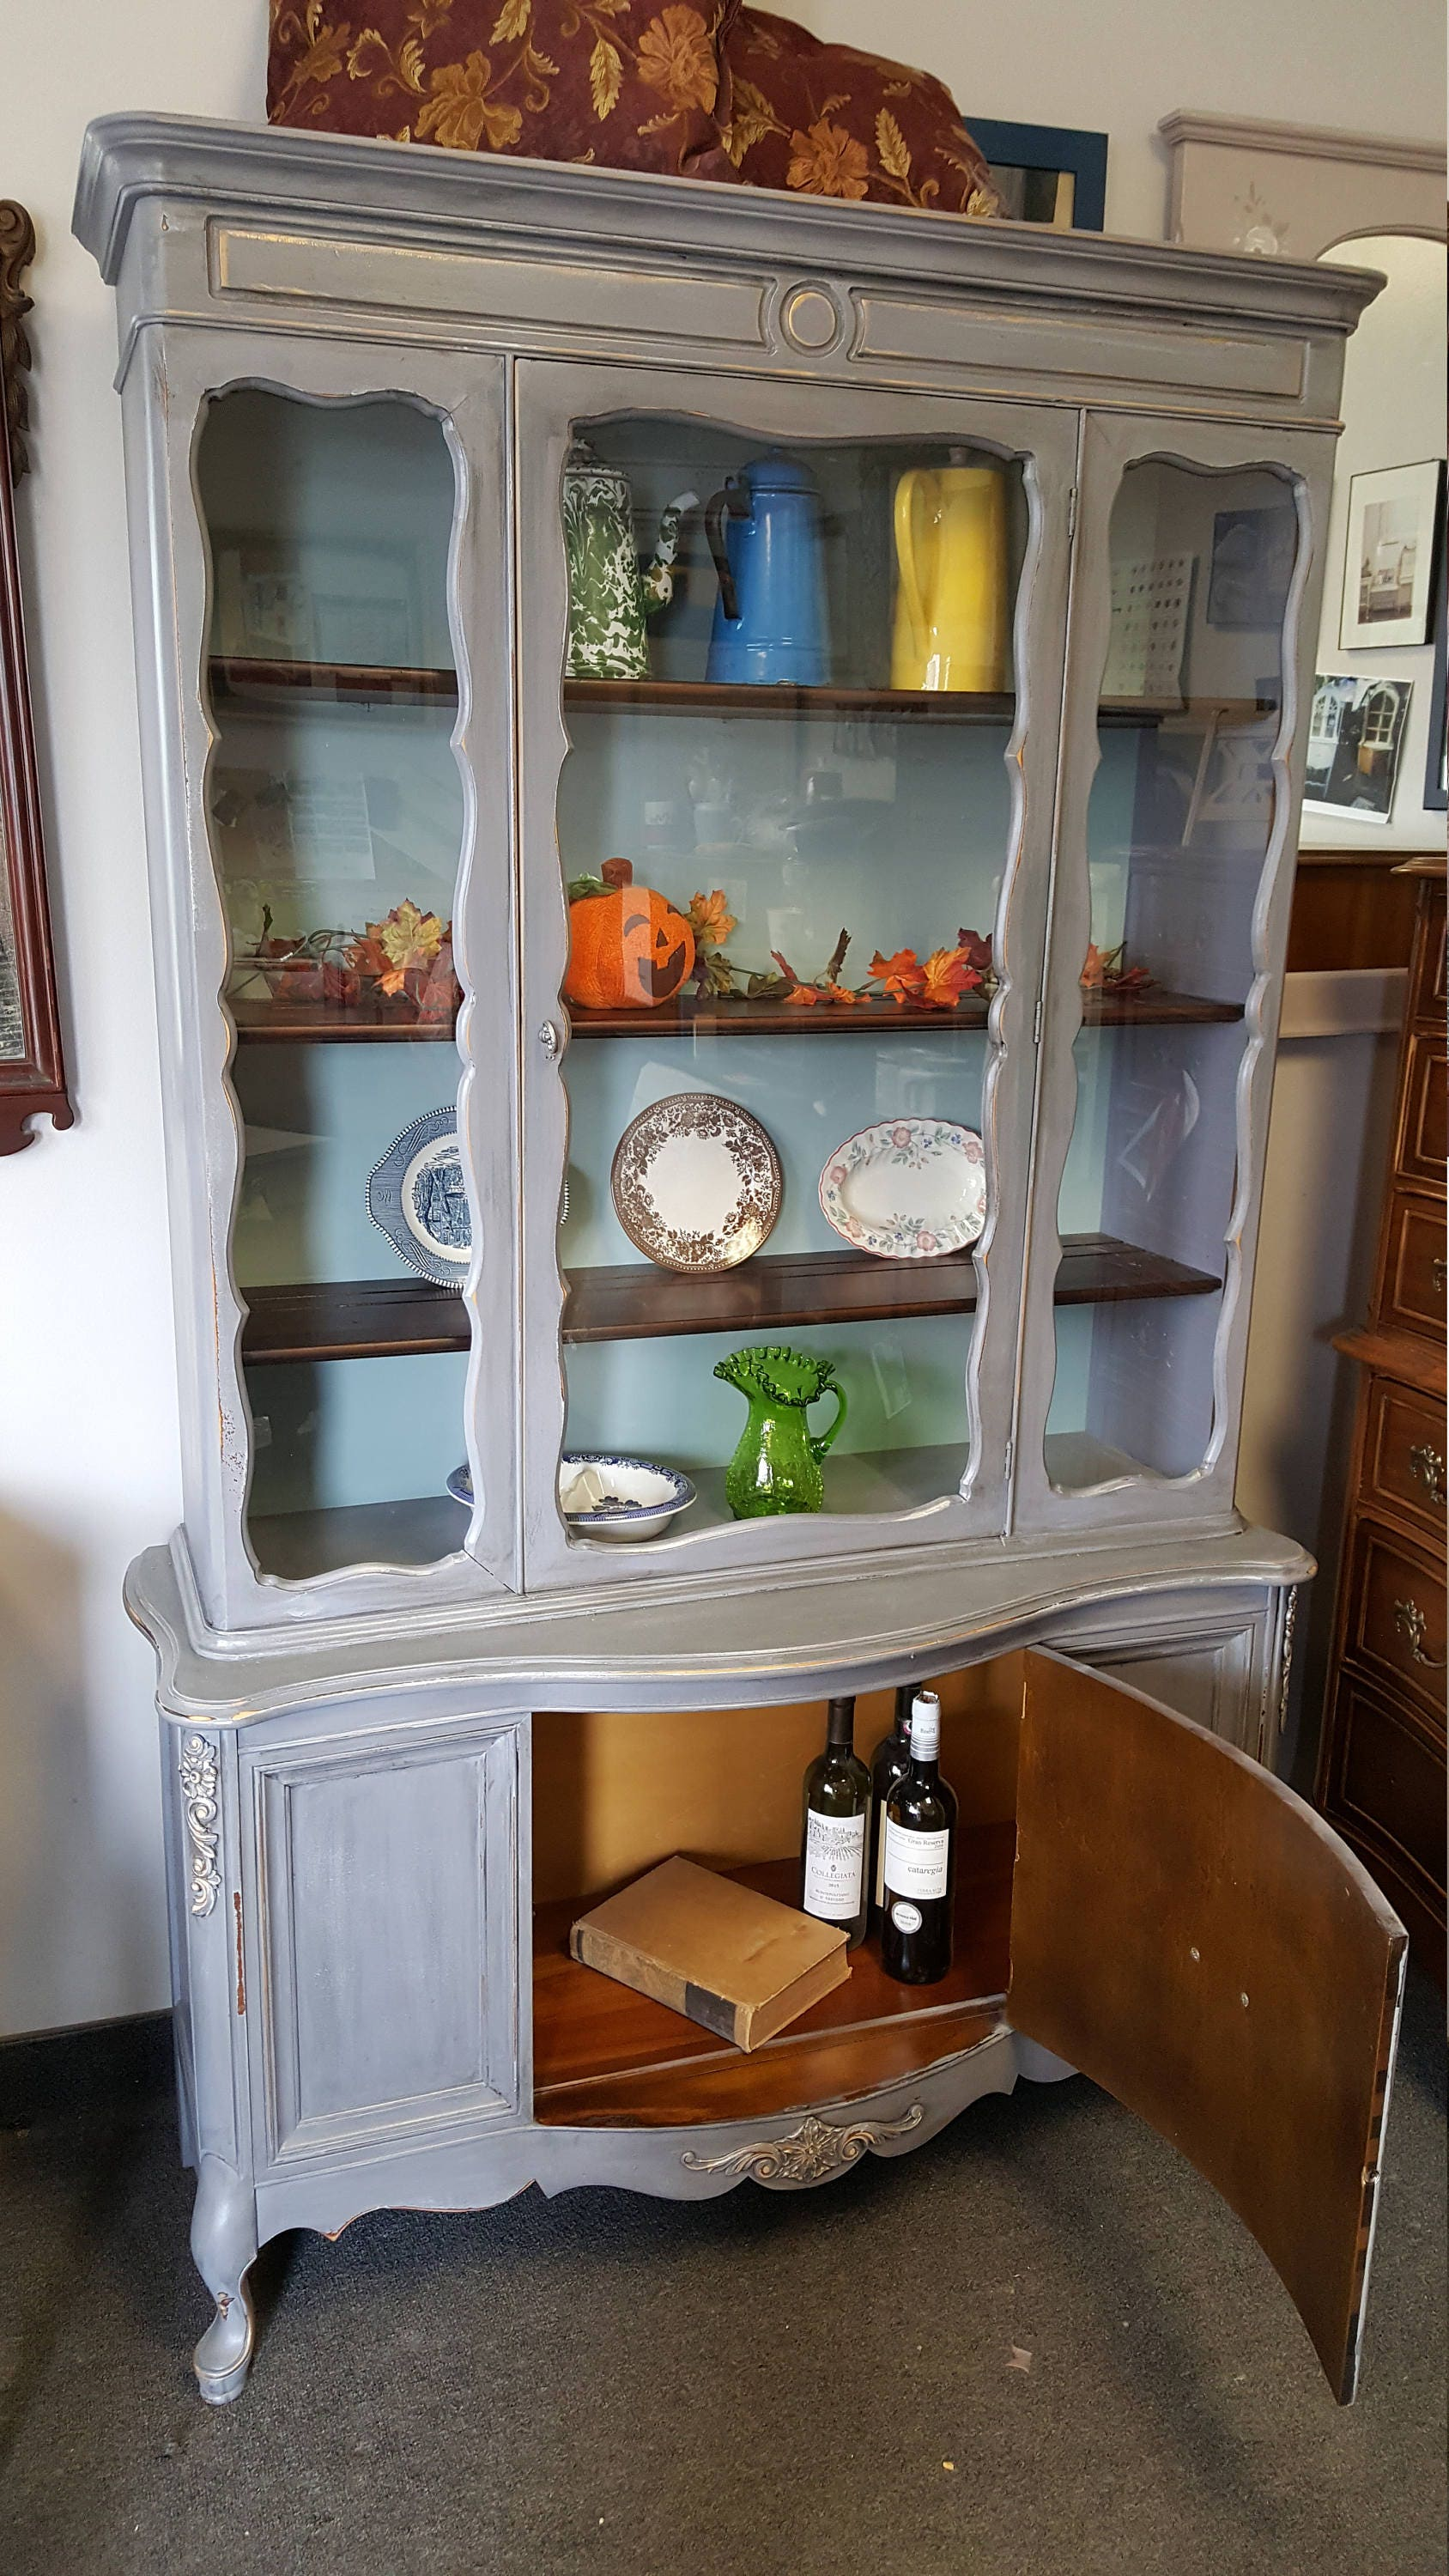 French country china cabinets - Gallery Photo Gallery Photo Gallery Photo